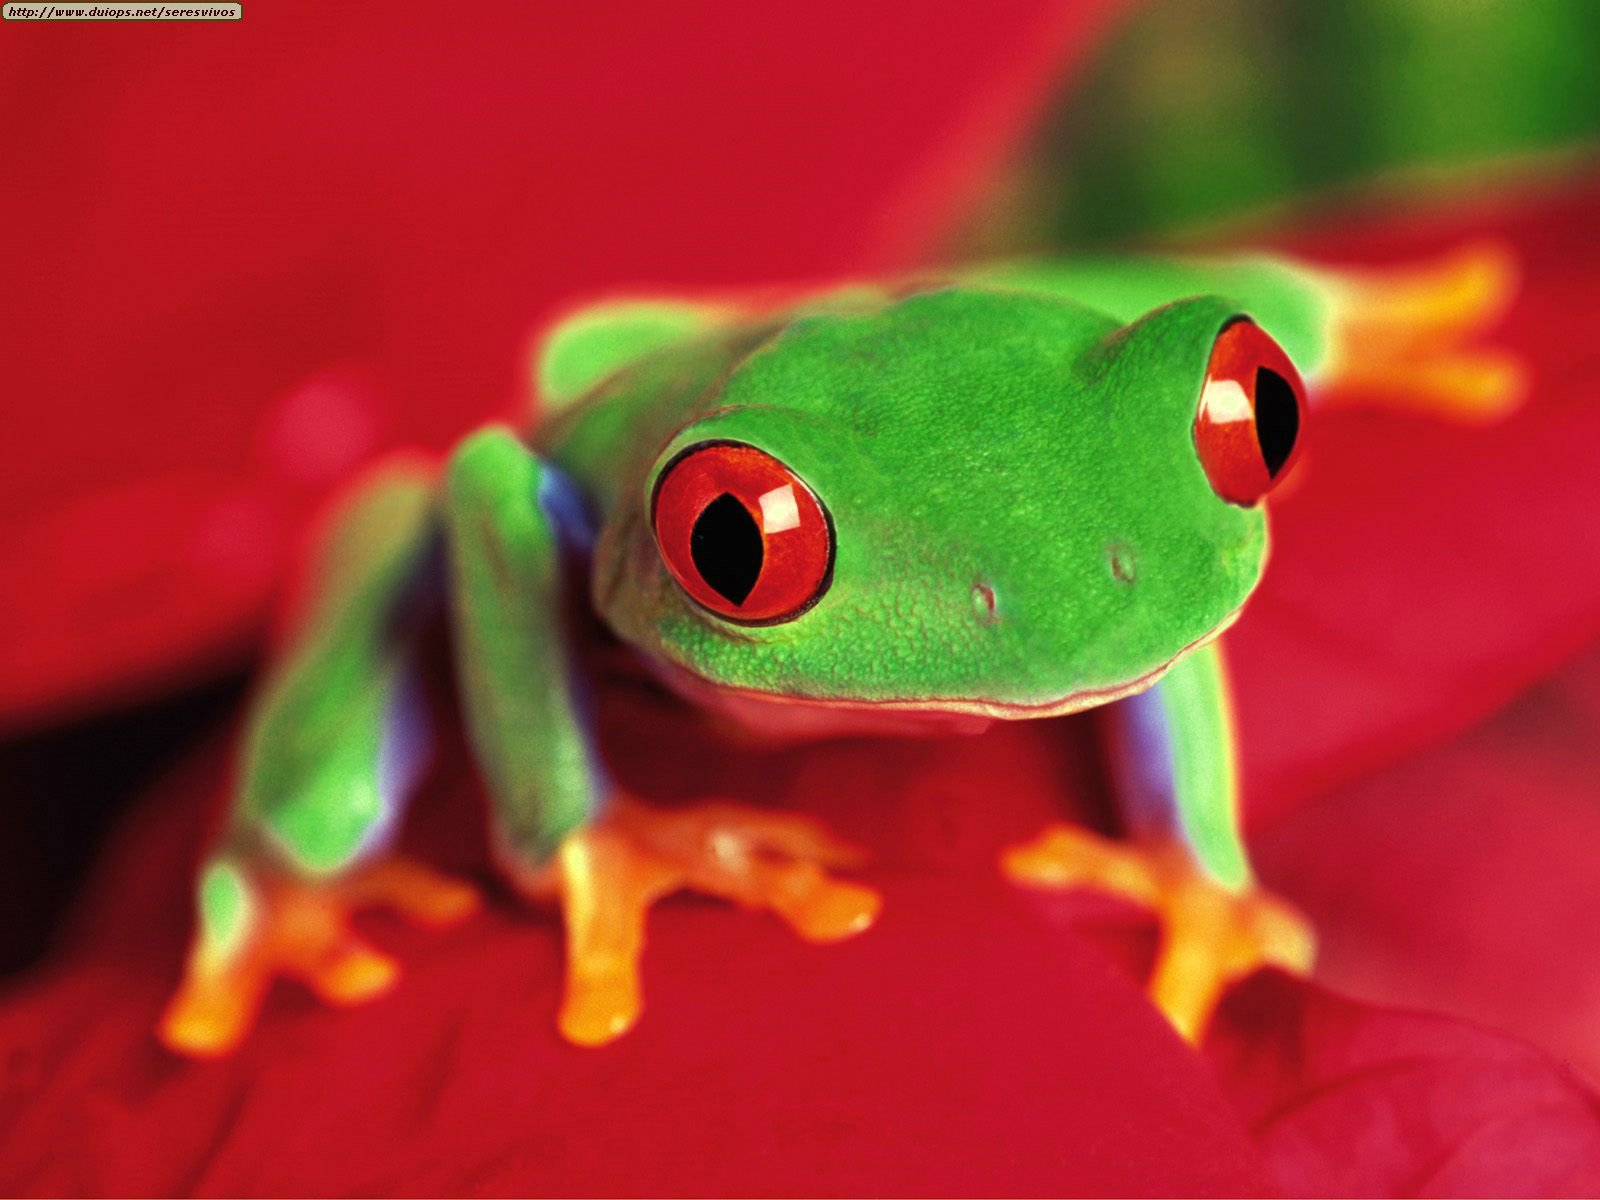 The Red Eye Tree Frog